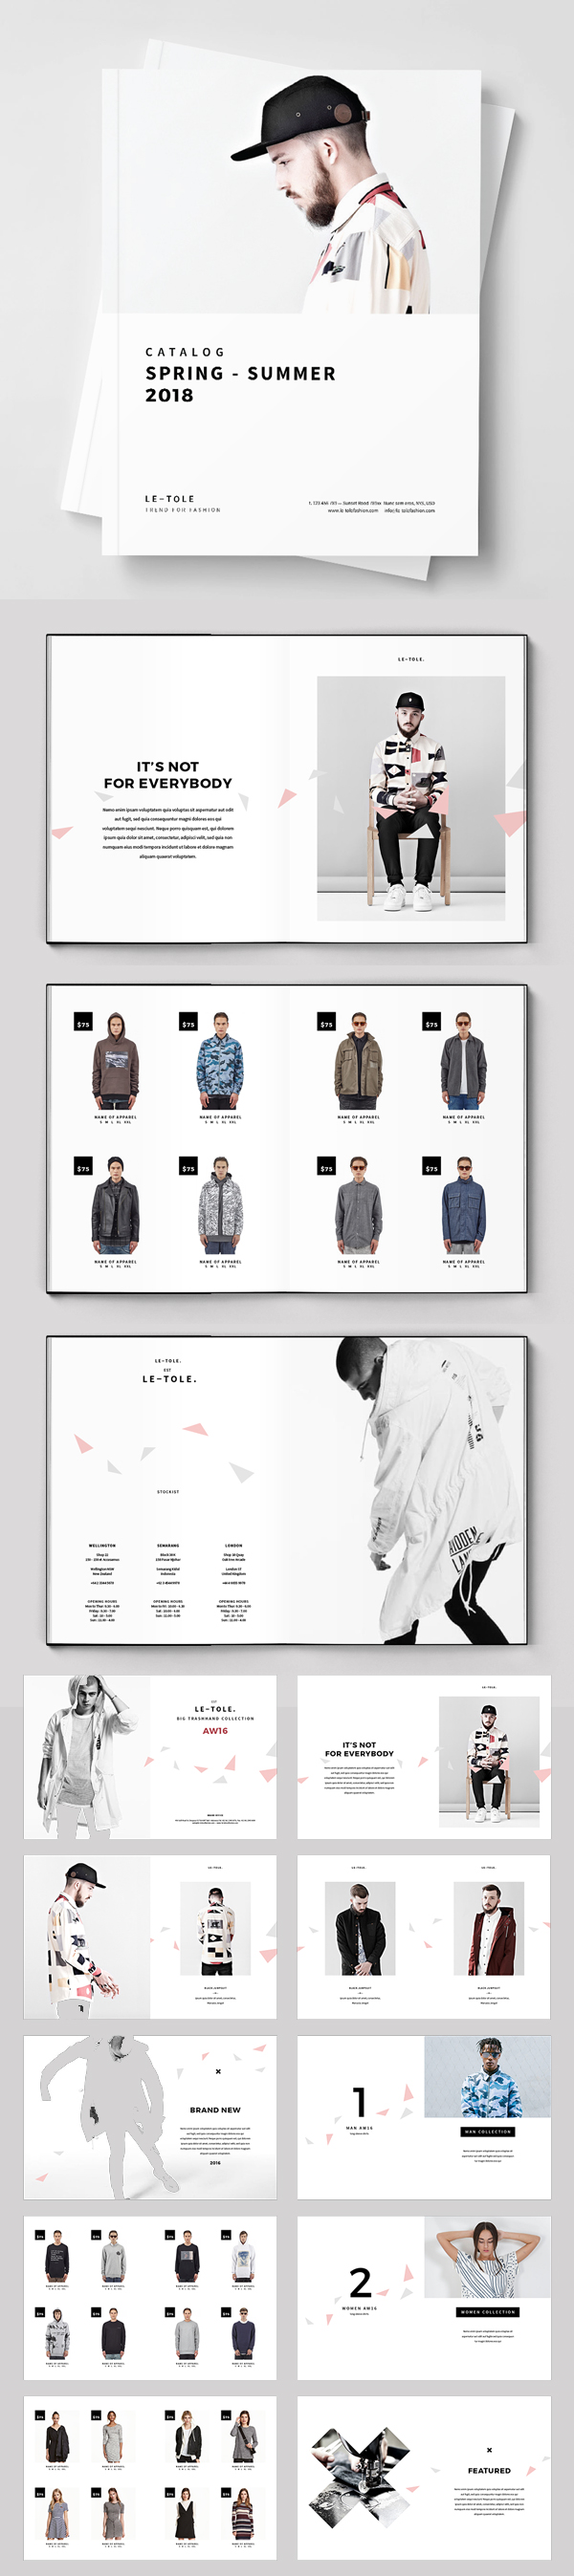 100 Professional Corporate Brochure Templates - 14